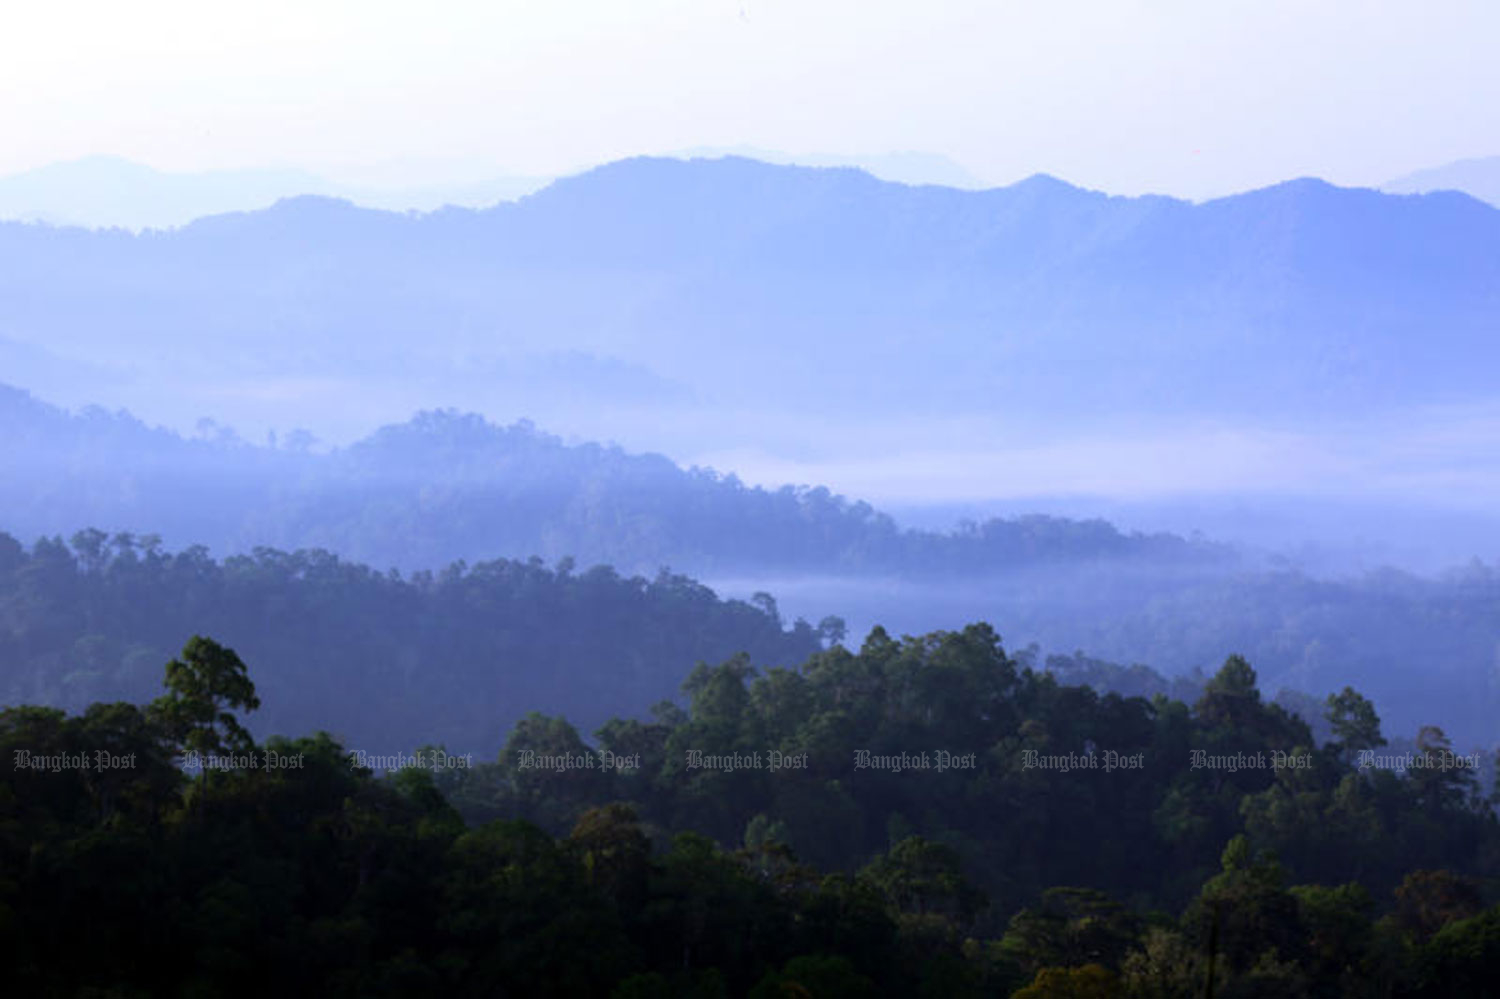 The Kaeng Krachan National Park in Phetchaburi province is part of the Kaeng Krachan Forest Complex that Thailand proposed for World Heritage listing. (File photo)